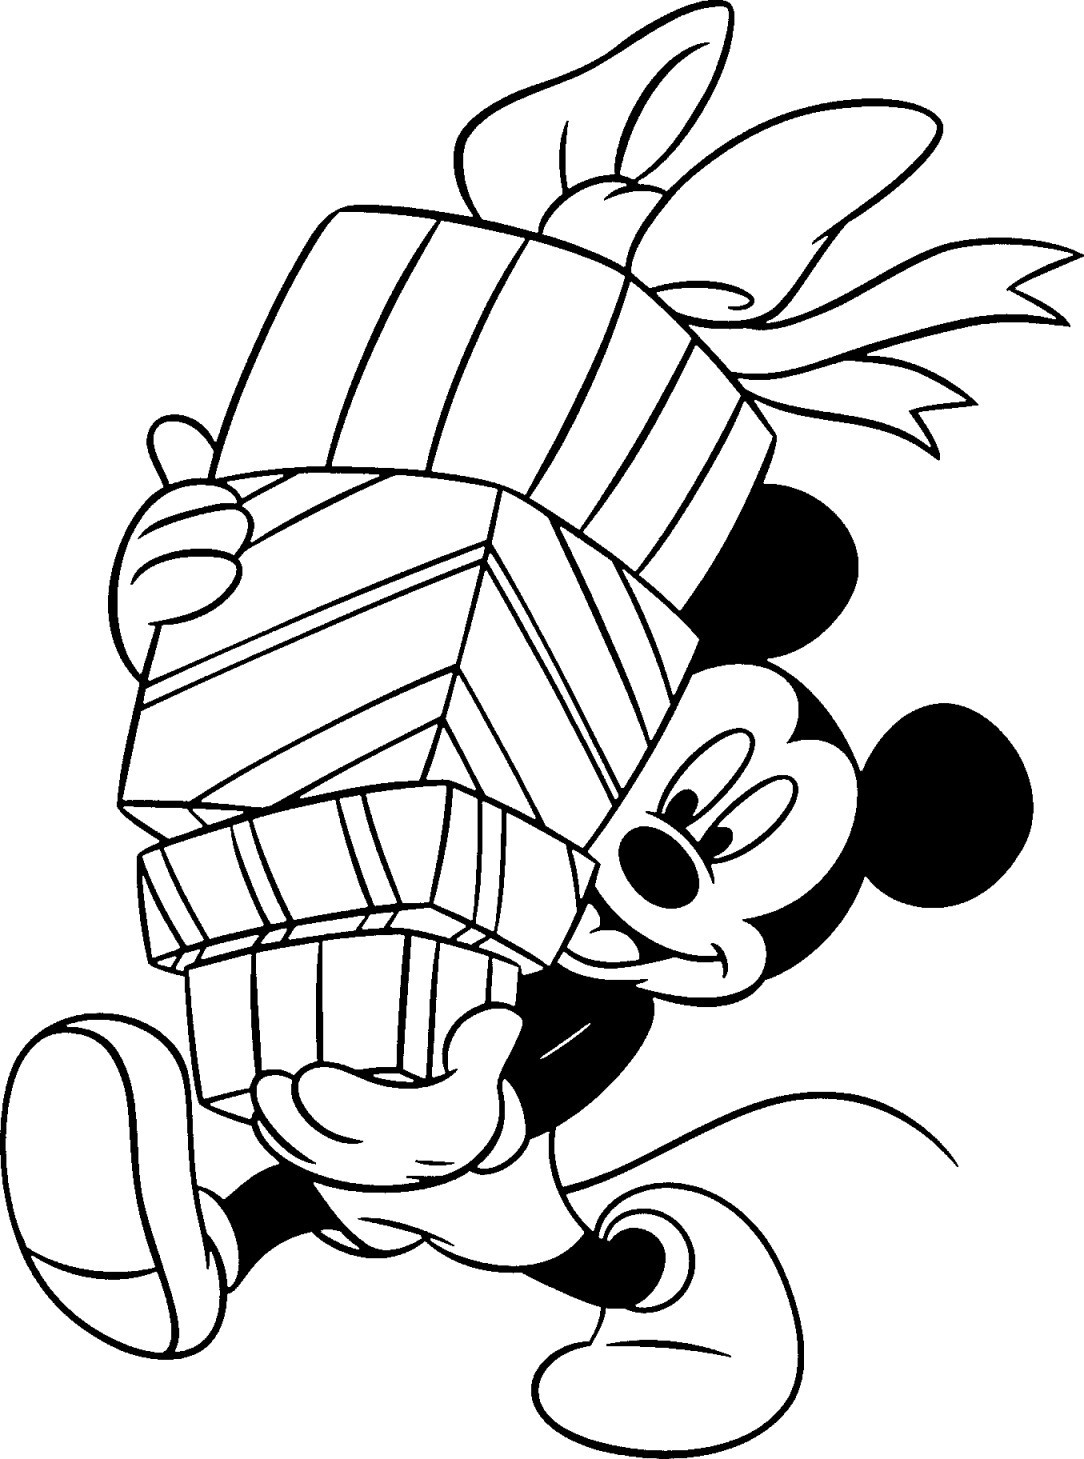 Best ideas about Disney Free Coloring Pages Printables . Save or Pin Free Disney Christmas Printable Coloring Pages for Kids Now.